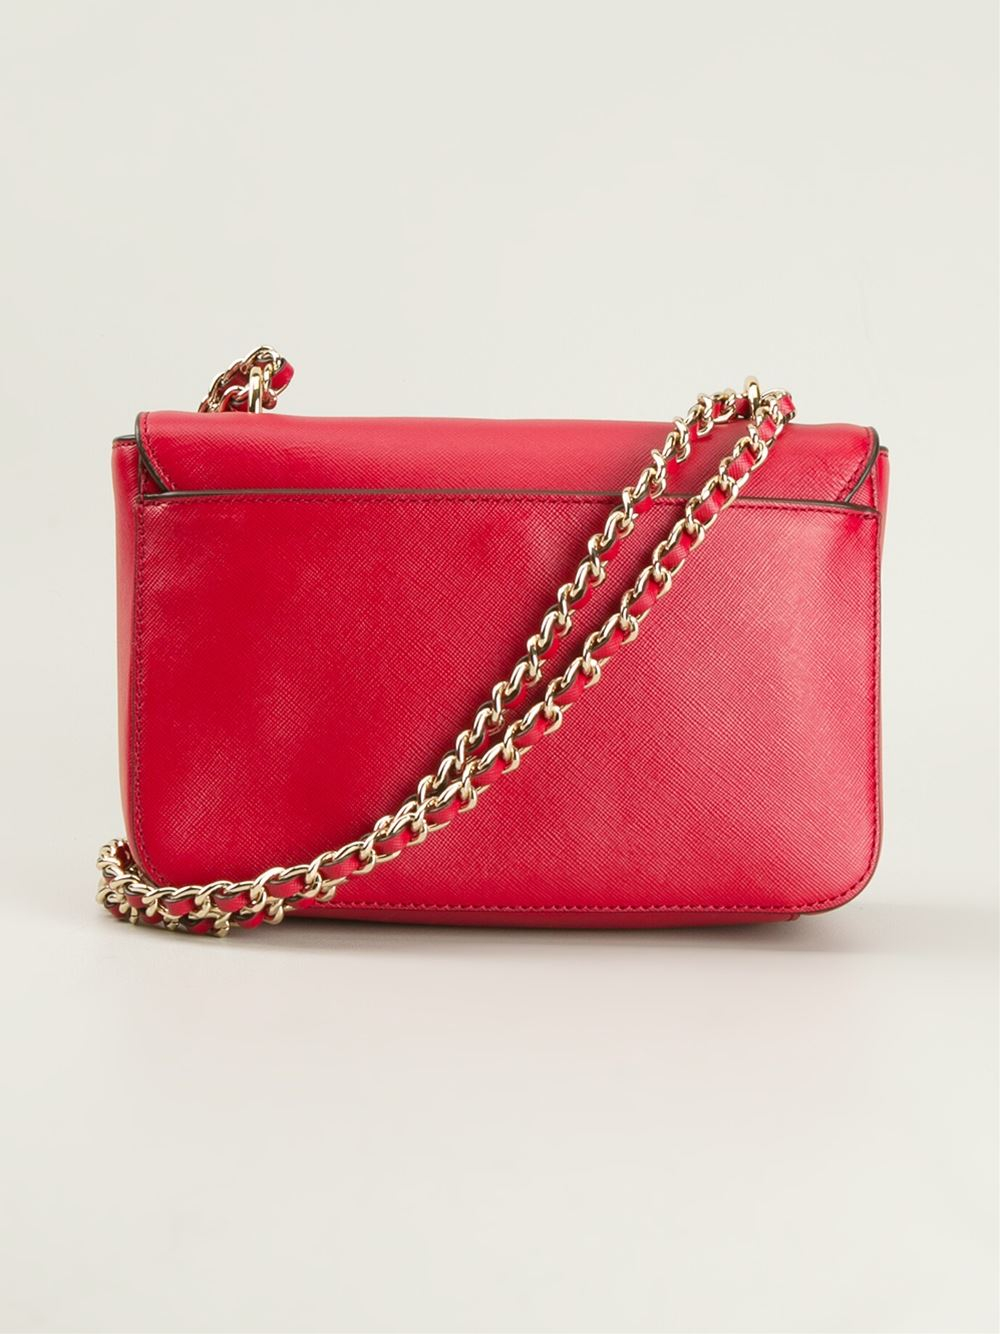 Tory Burch Robinson Shoulder Bag In Red Lyst